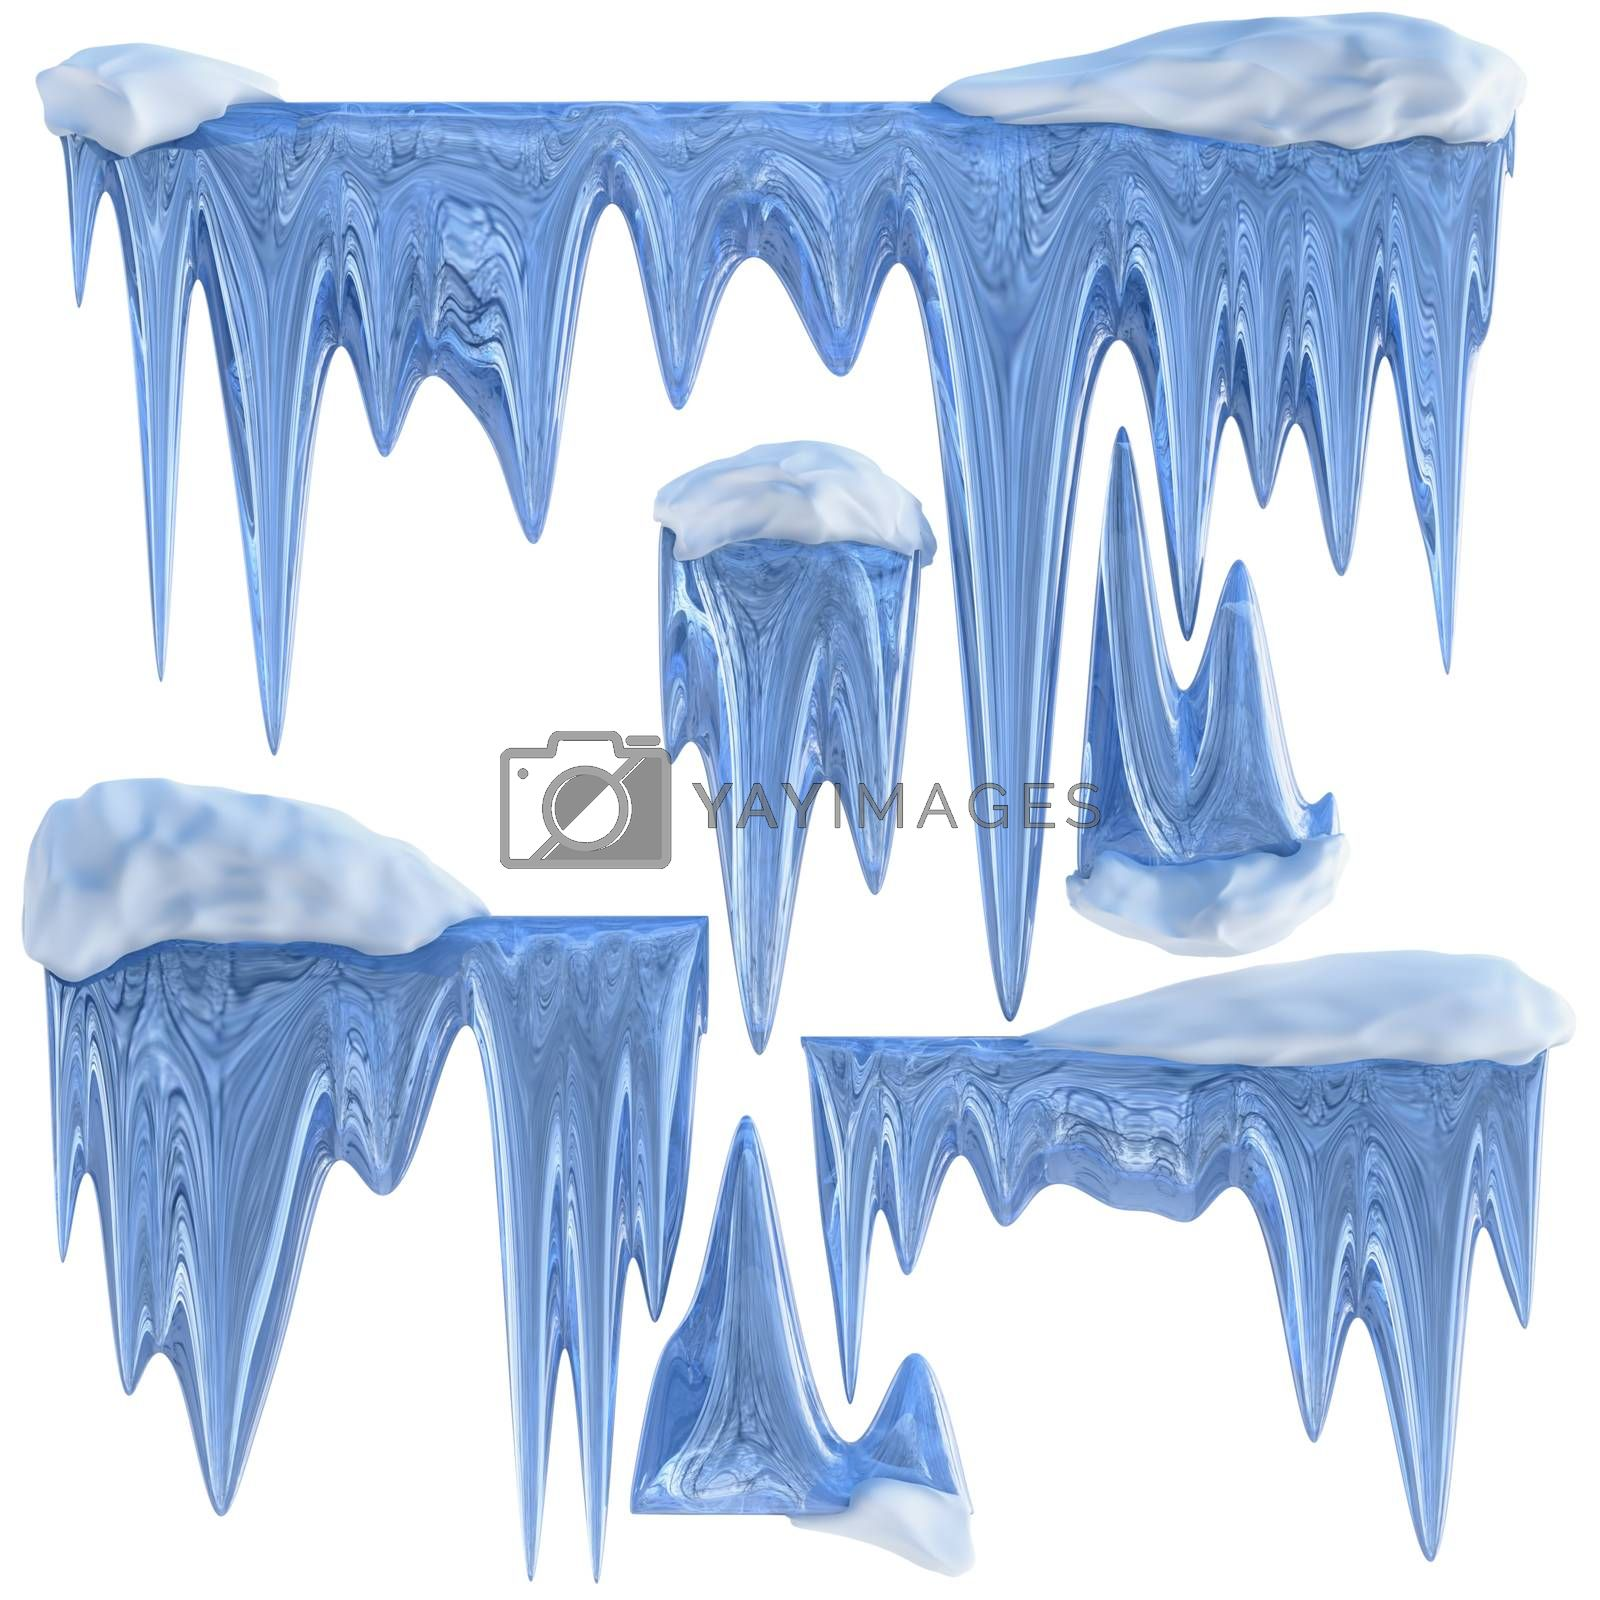 set of hanging thawing icicles of a blue shade by merzavka